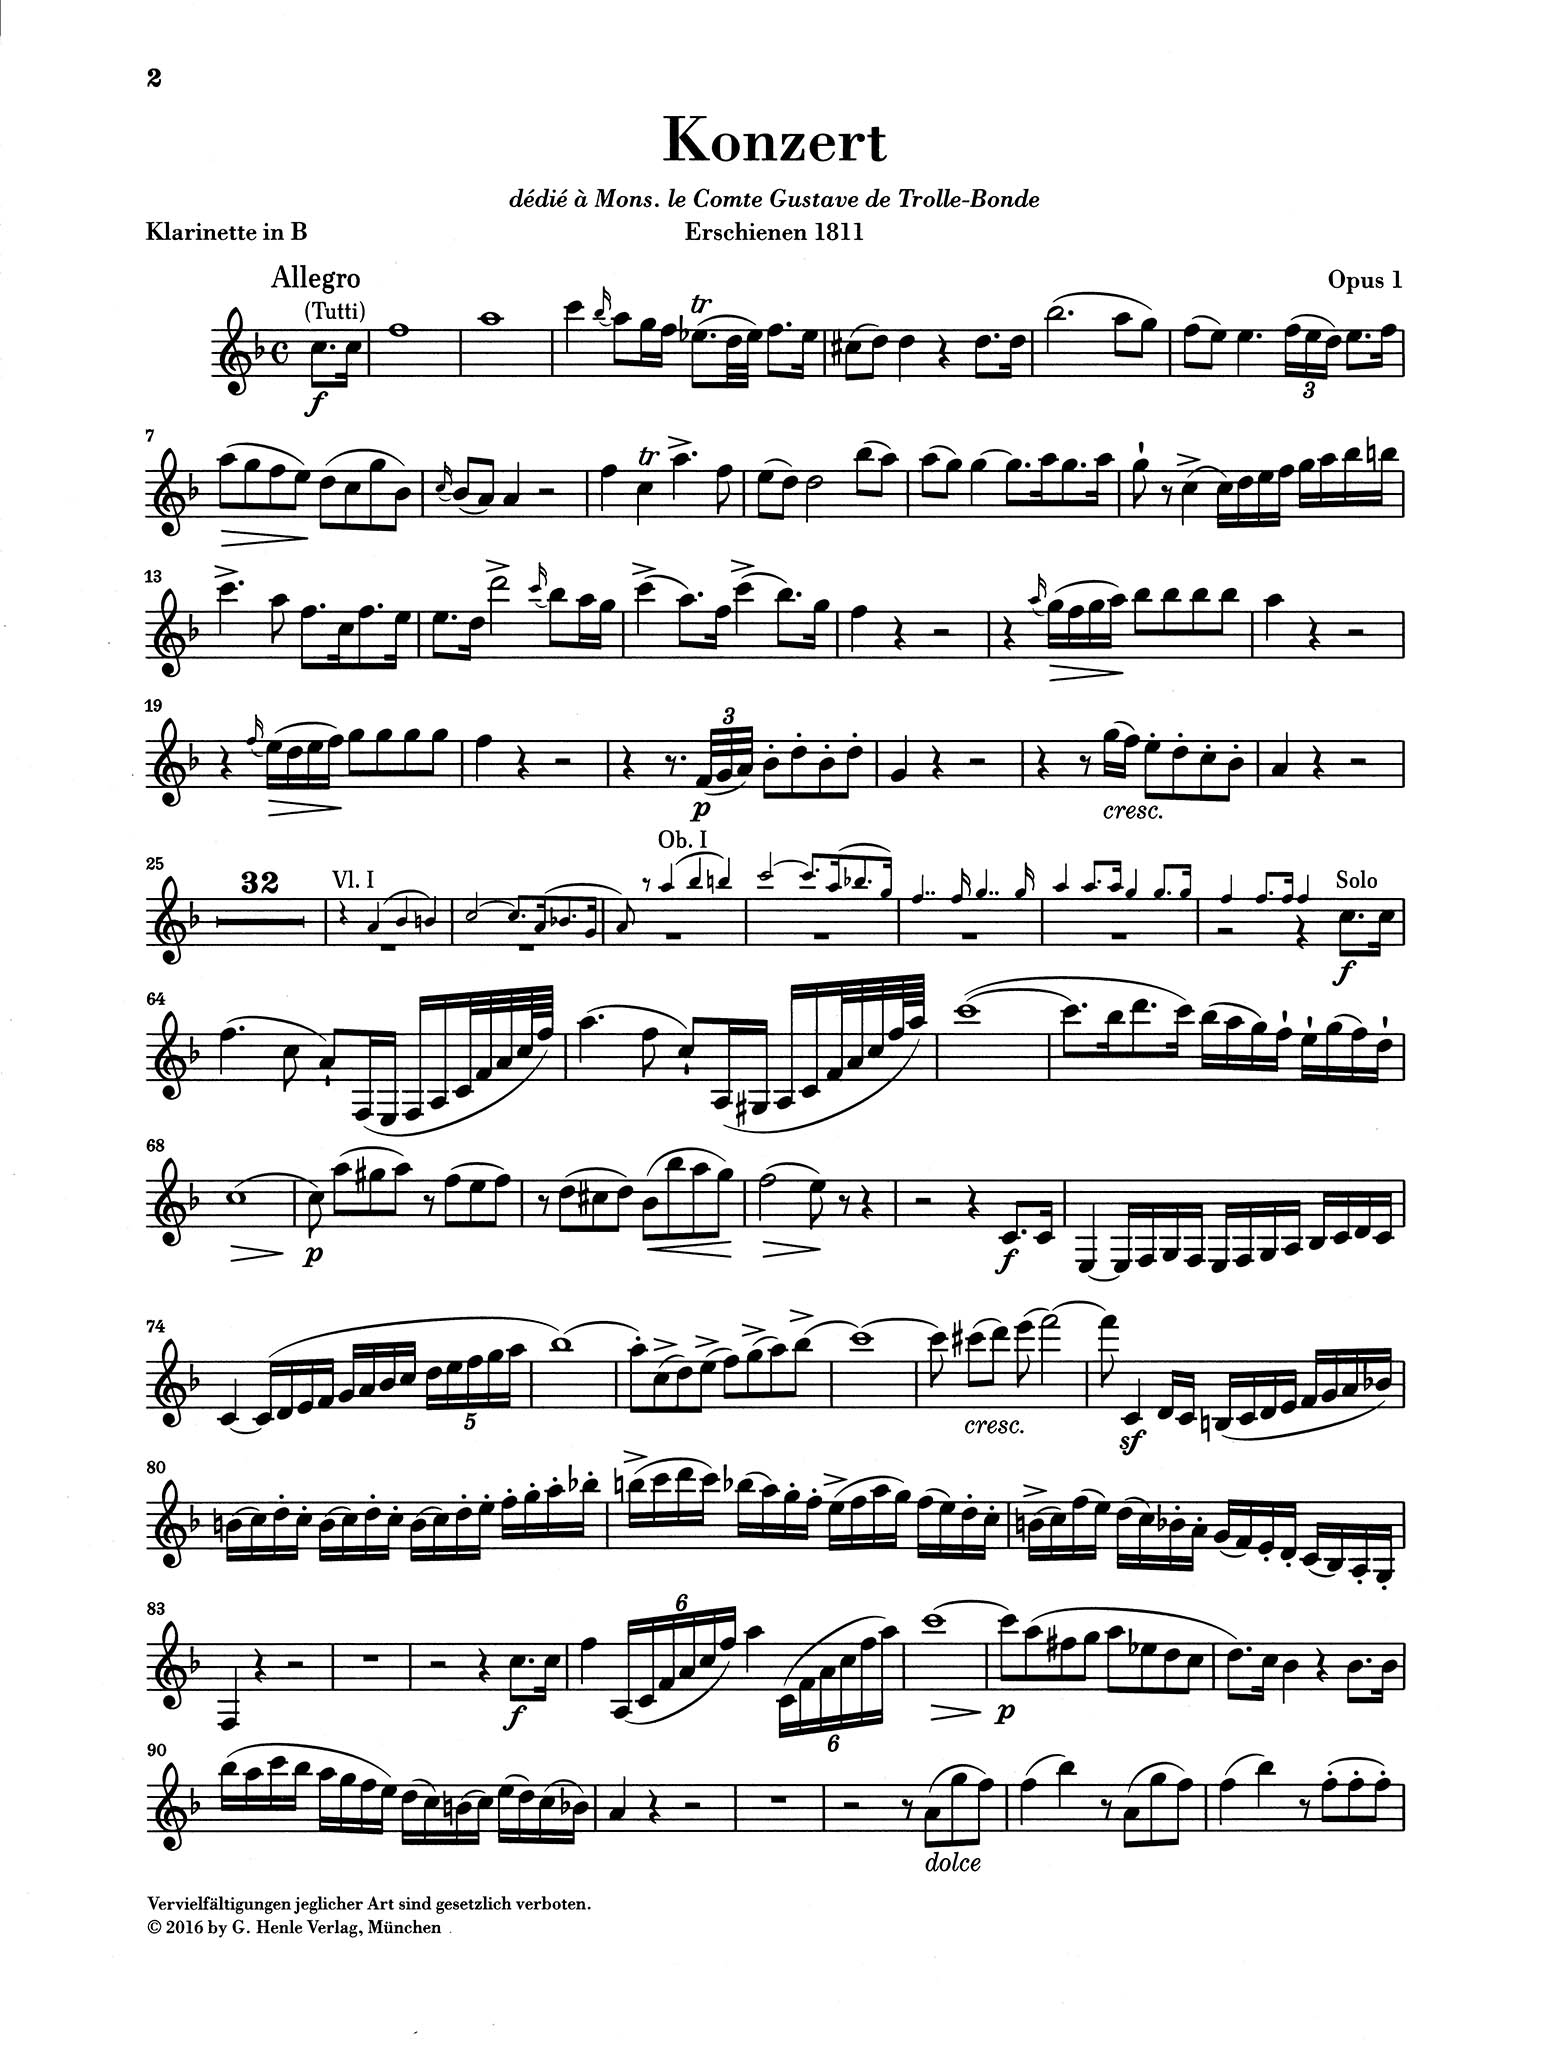 Clarinet Concerto in E-flat Major, Op. 1 Clarinet part